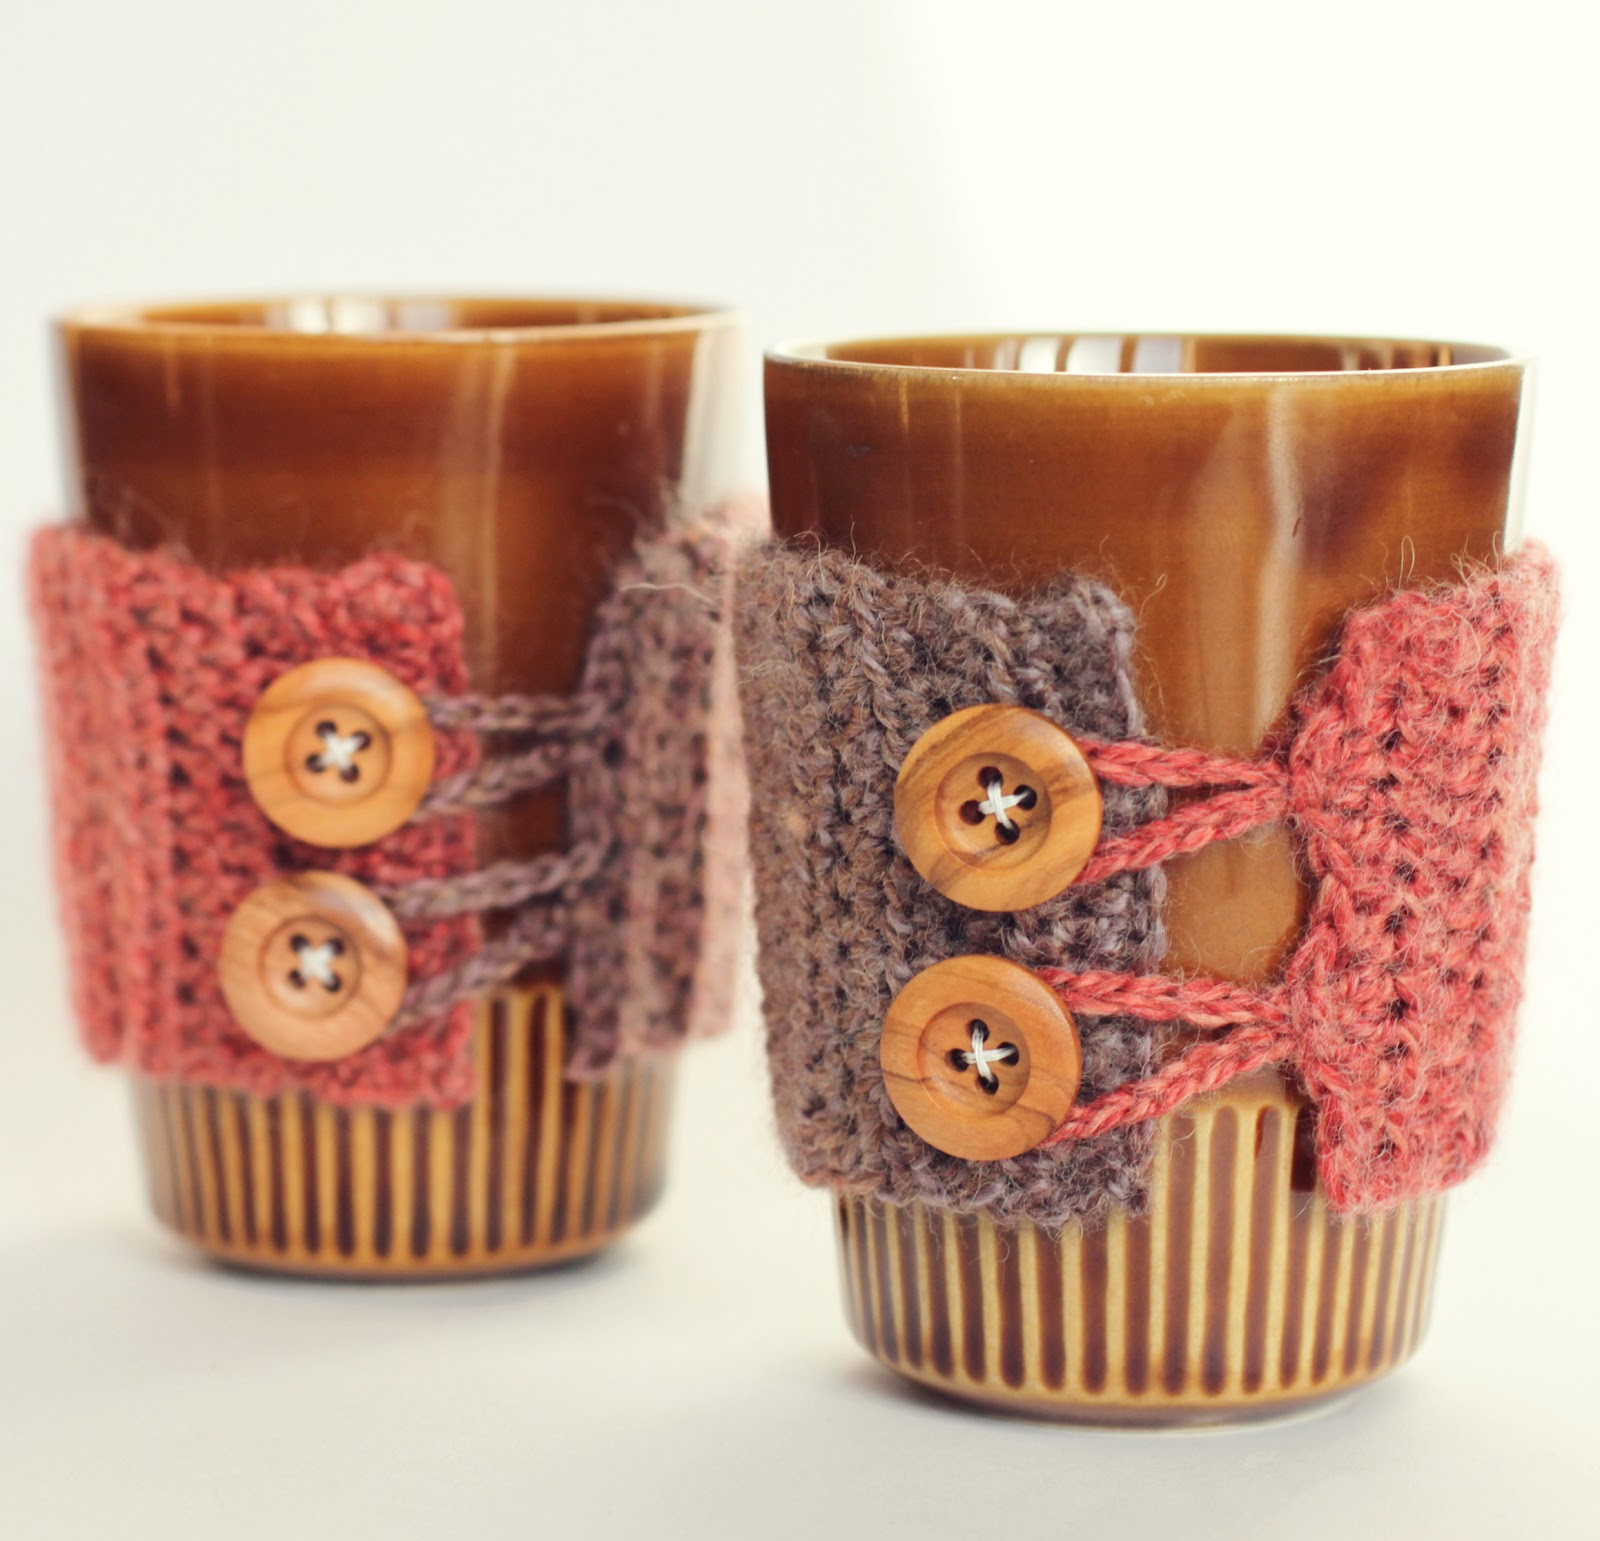 Crochet Coffee Cup Cozy Lovely L♥valizious Mug Cozy Tutorial Of Crochet Coffee Cup Cozy Luxury Happy Holidays Handmade Gift Idea Crochet Heart Coffee